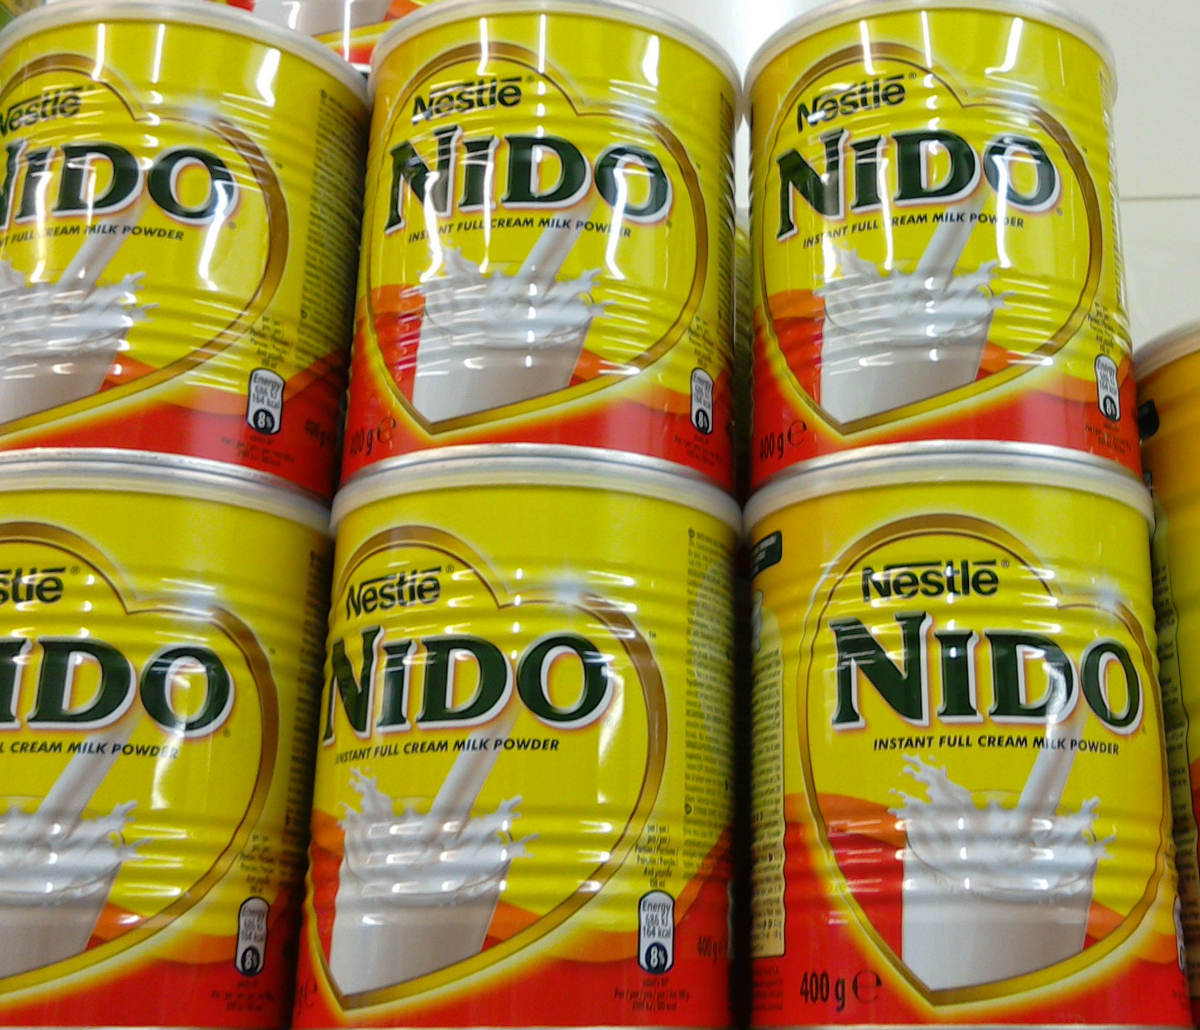 Nextle Nido Milk Powder